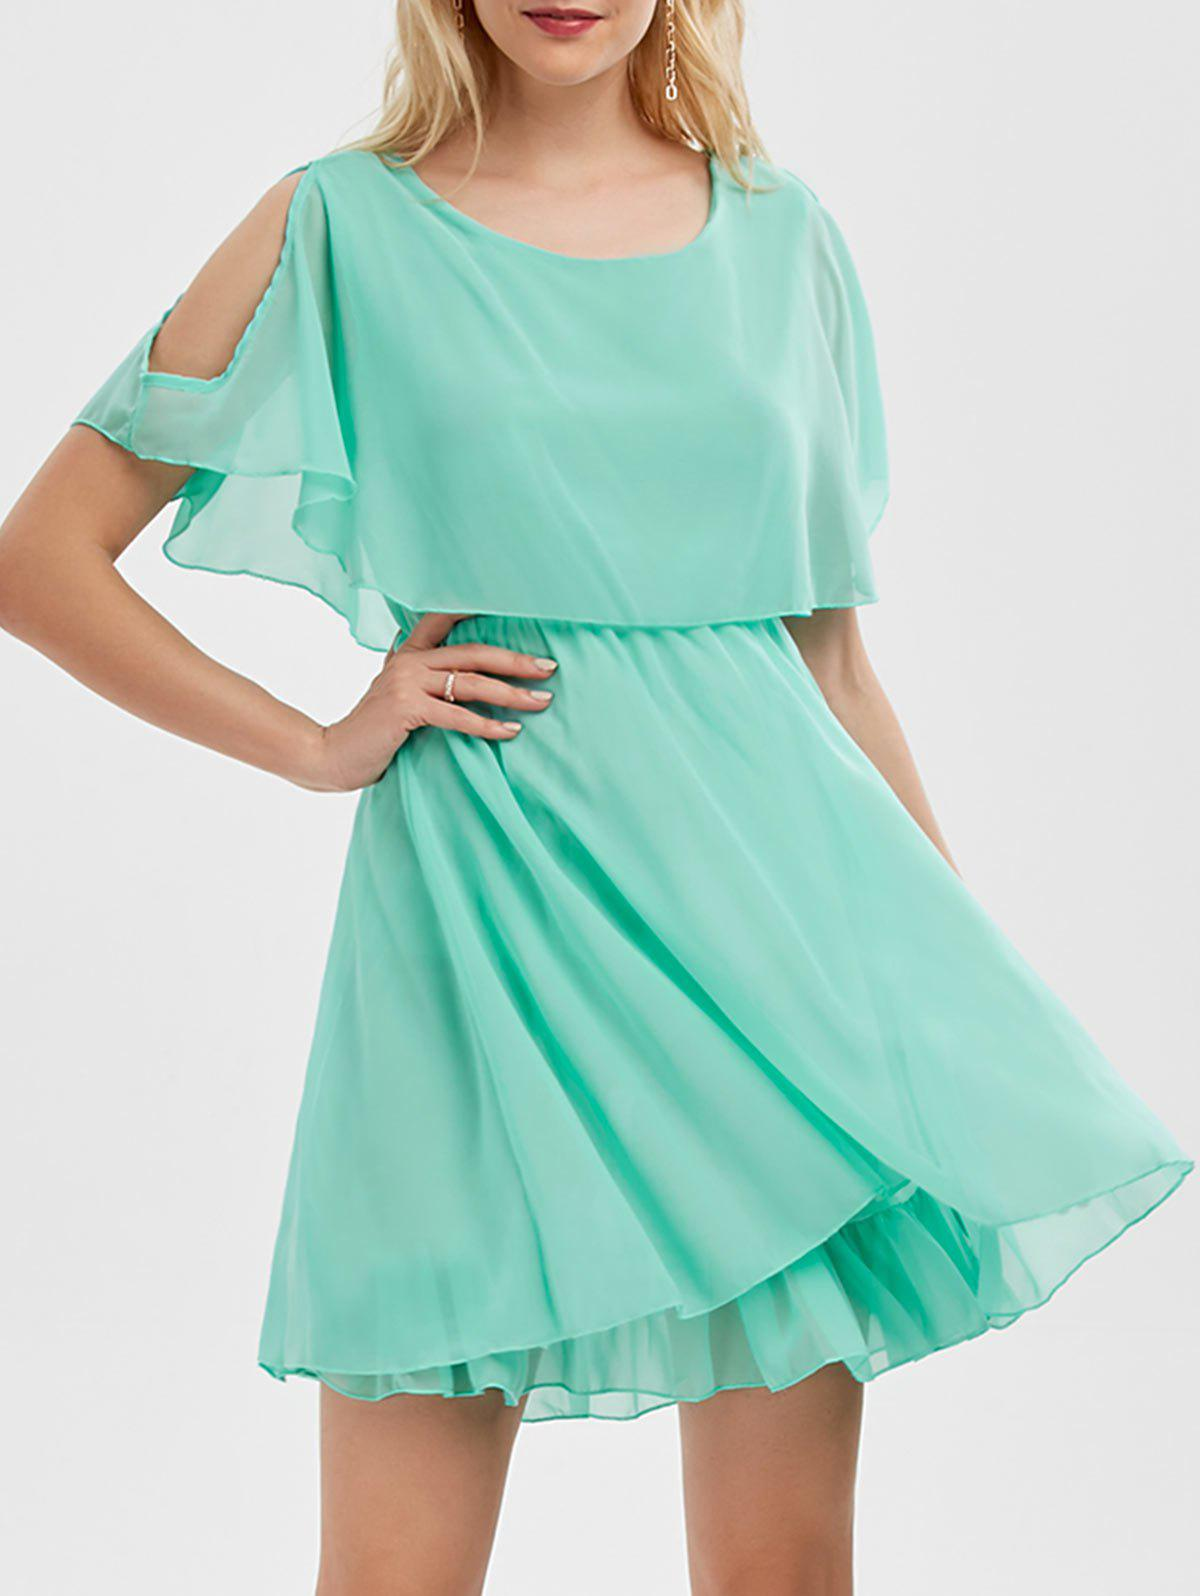 Ruffle Chiffon Cold Shoulder Mini Dress - LIGHT GREEN 2XL